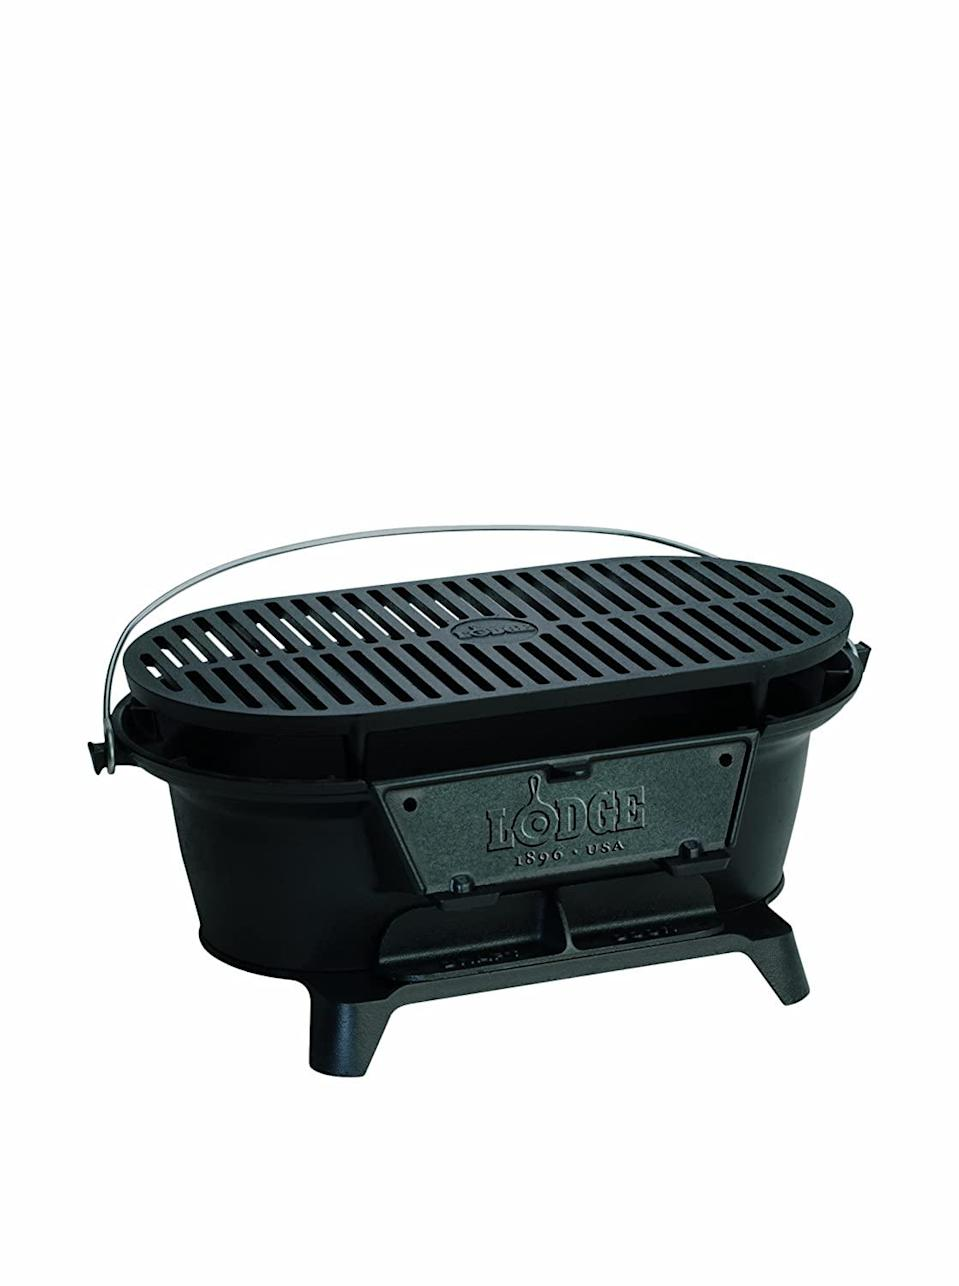 "<h3>Portable Grille</h3> <br>The cast-iron experts at Lodge have created a super-simple and seemingly indestructible charcoal grill. It's totally compact, and its iron construction ensures that it conducts heat really, <em>really</em> well.<br><br><strong>Lodge</strong> Sportsman's Grill, $, available at <a href=""https://www.amazon.com/gp/product/B00022OK2A/ref=as_at"" rel=""nofollow noopener"" target=""_blank"" data-ylk=""slk:Amazon"" class=""link rapid-noclick-resp"">Amazon</a><br><br><strong>Cuisinart</strong> GrateLifter Portable Charcoal Grill, $, available at <a href=""https://go.skimresources.com/?id=30283X879131&url=https%3A%2F%2Fwww.homedepot.com%2Fp%2FCuisinart-GrateLifter-Portable-Charcoal-Grill-CCG-100%2F202538387"" rel=""nofollow noopener"" target=""_blank"" data-ylk=""slk:Home Depot"" class=""link rapid-noclick-resp"">Home Depot</a><br>"